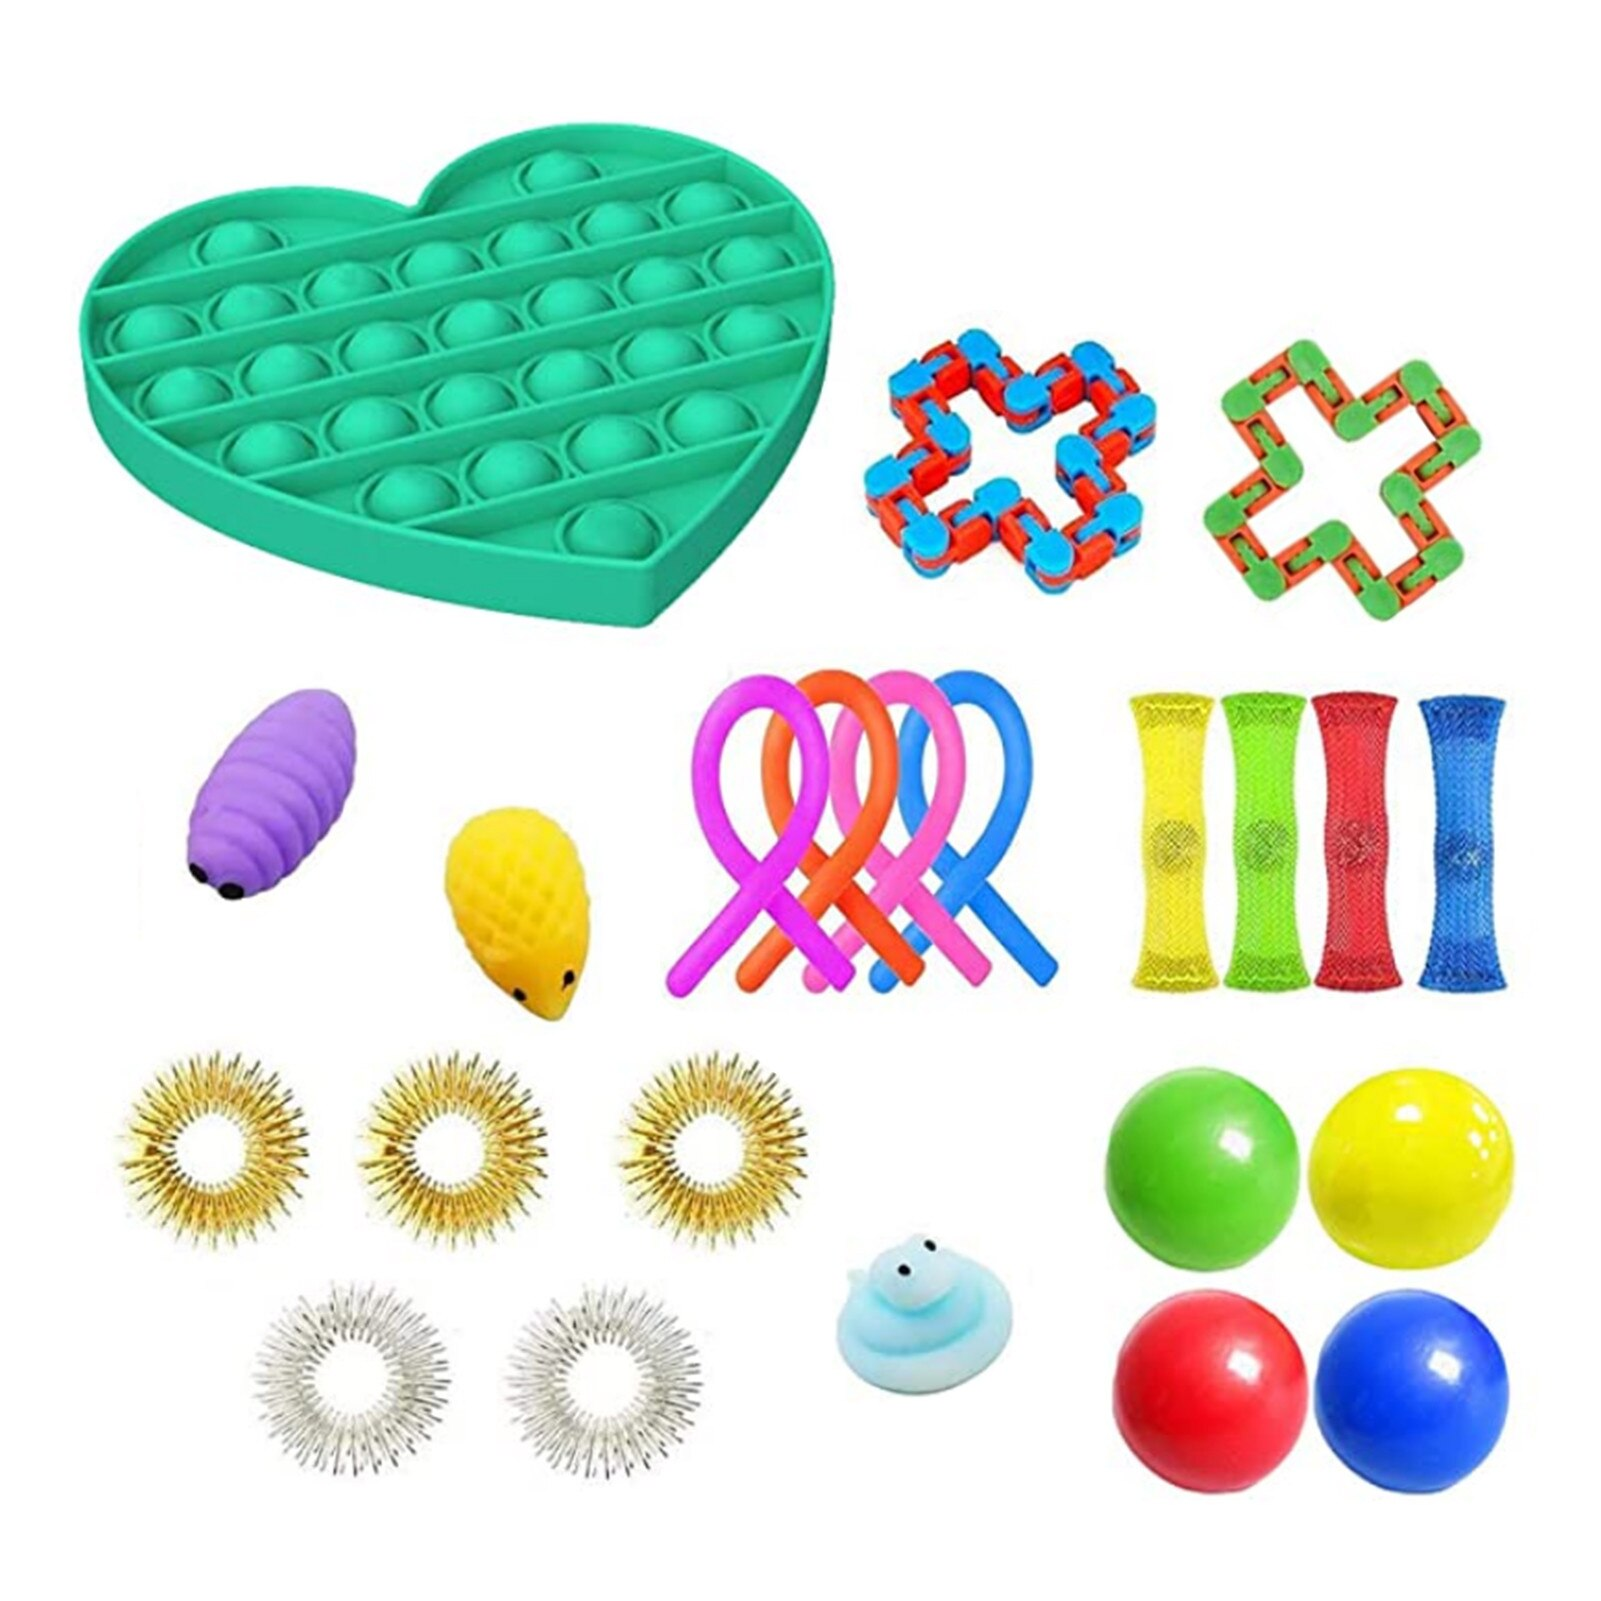 Fidget Sensory Toy Set Sensory Relieve Stress Toy Bundle For Kids Adults Simple Dimple Fidget Toy Squishy Soft Toy enlarge